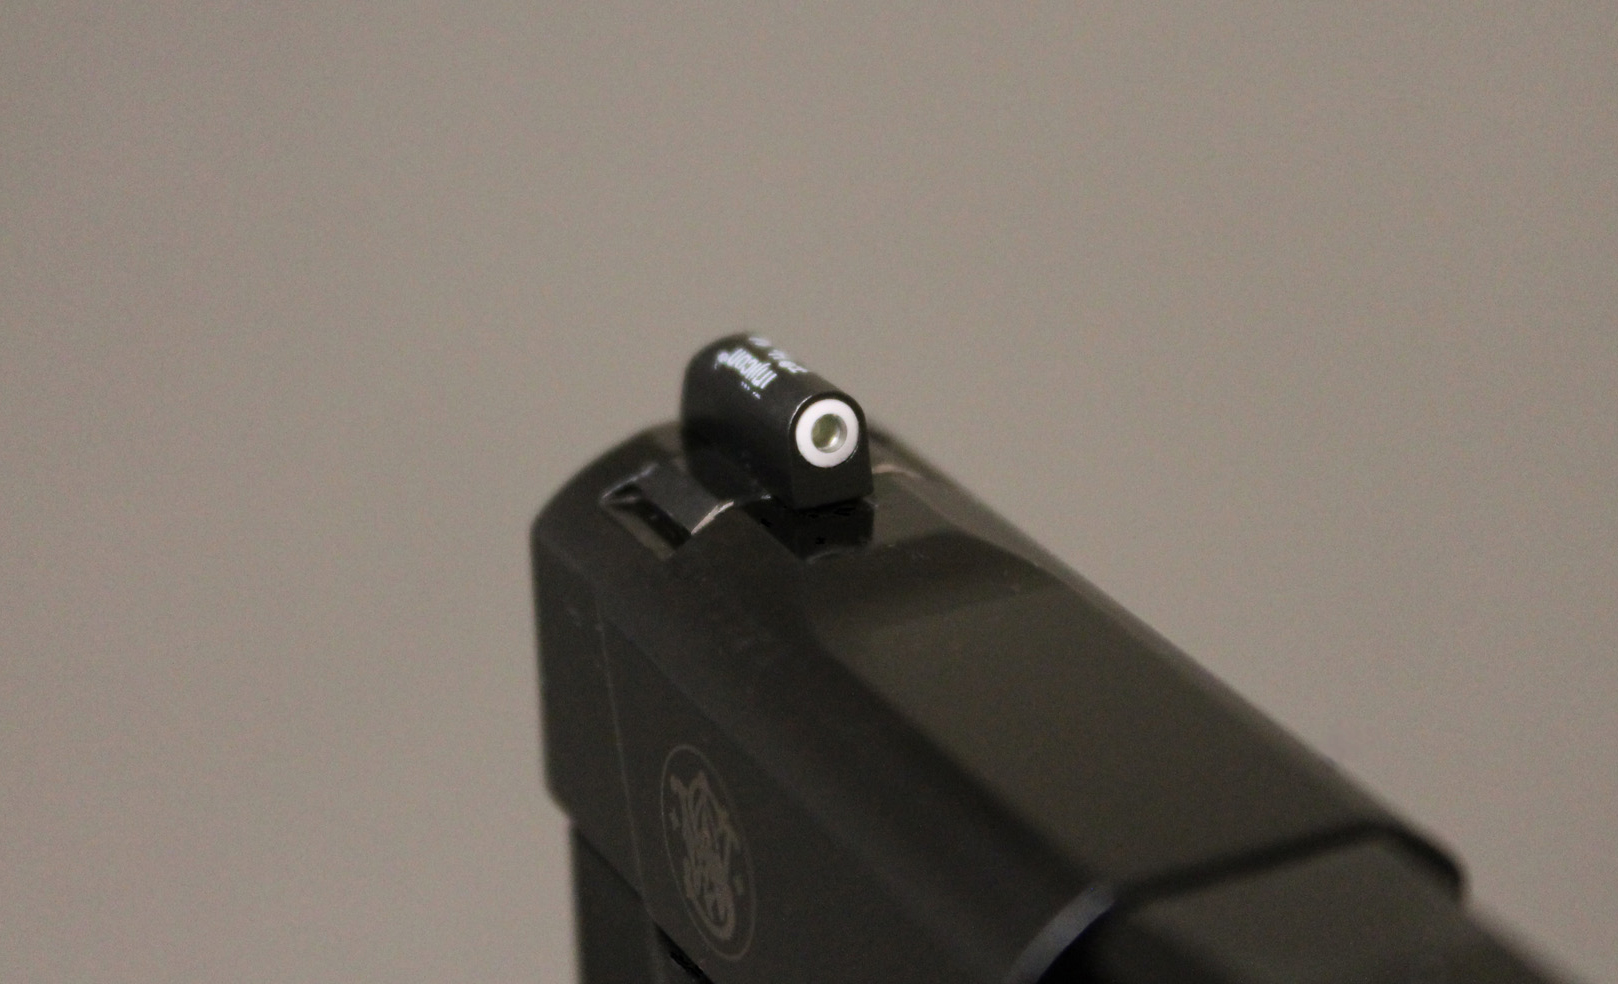 Smith & Wesson Bodyguard 380 XS front port side